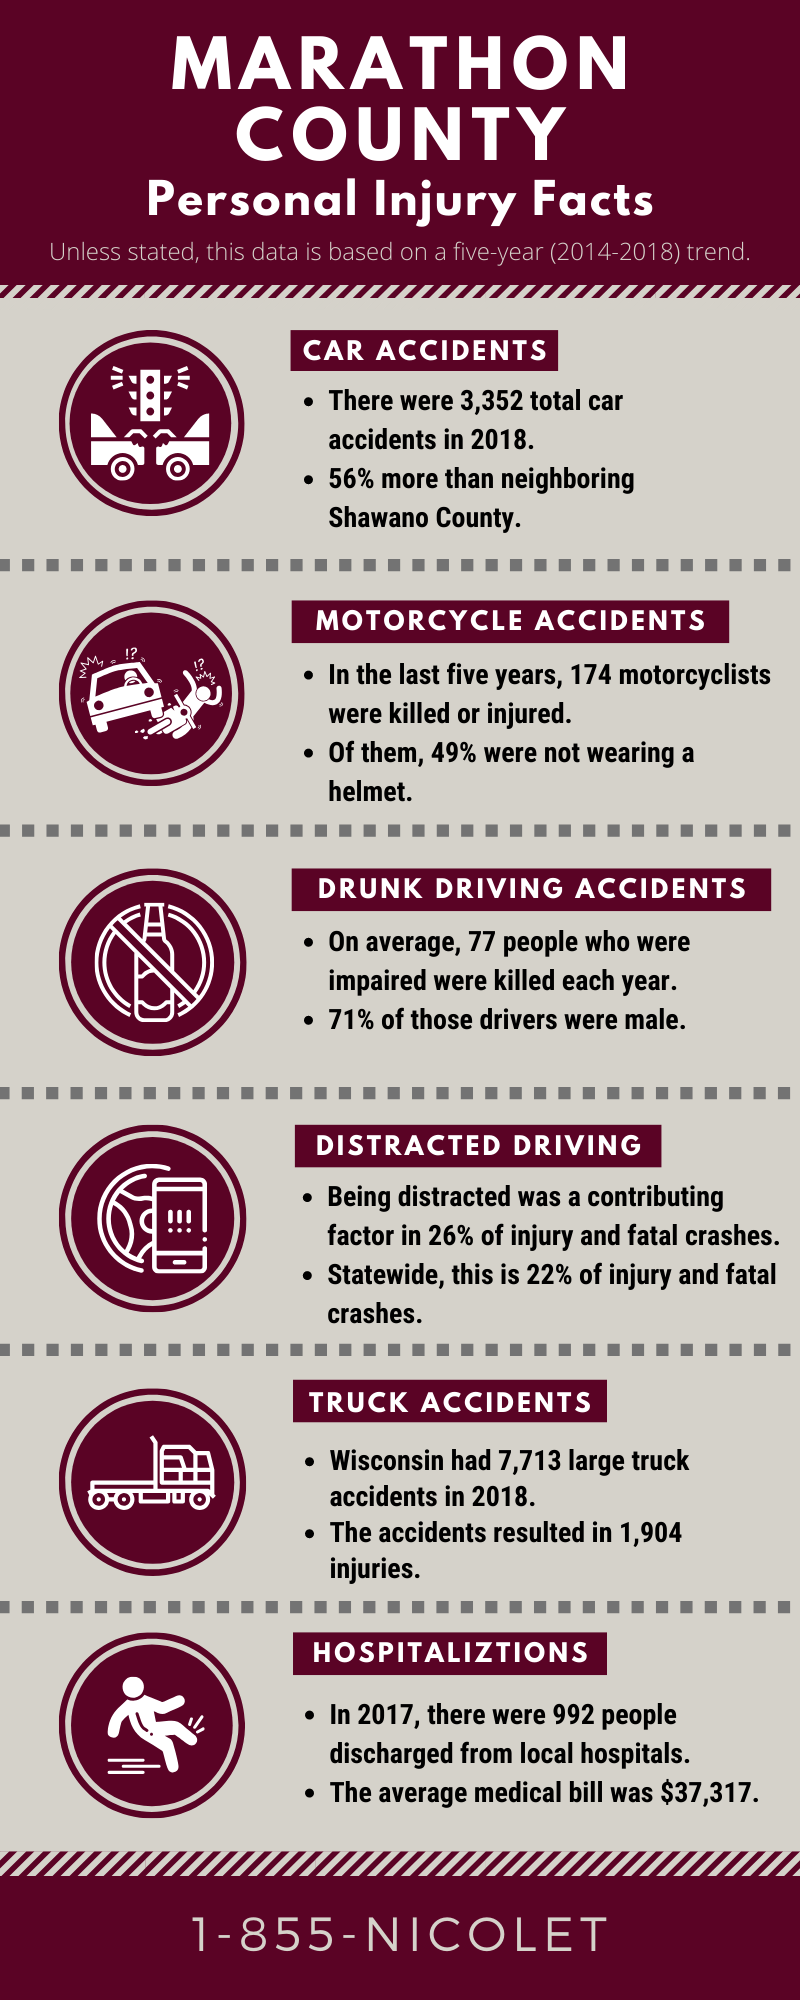 Marathon County personal injury facts infographic